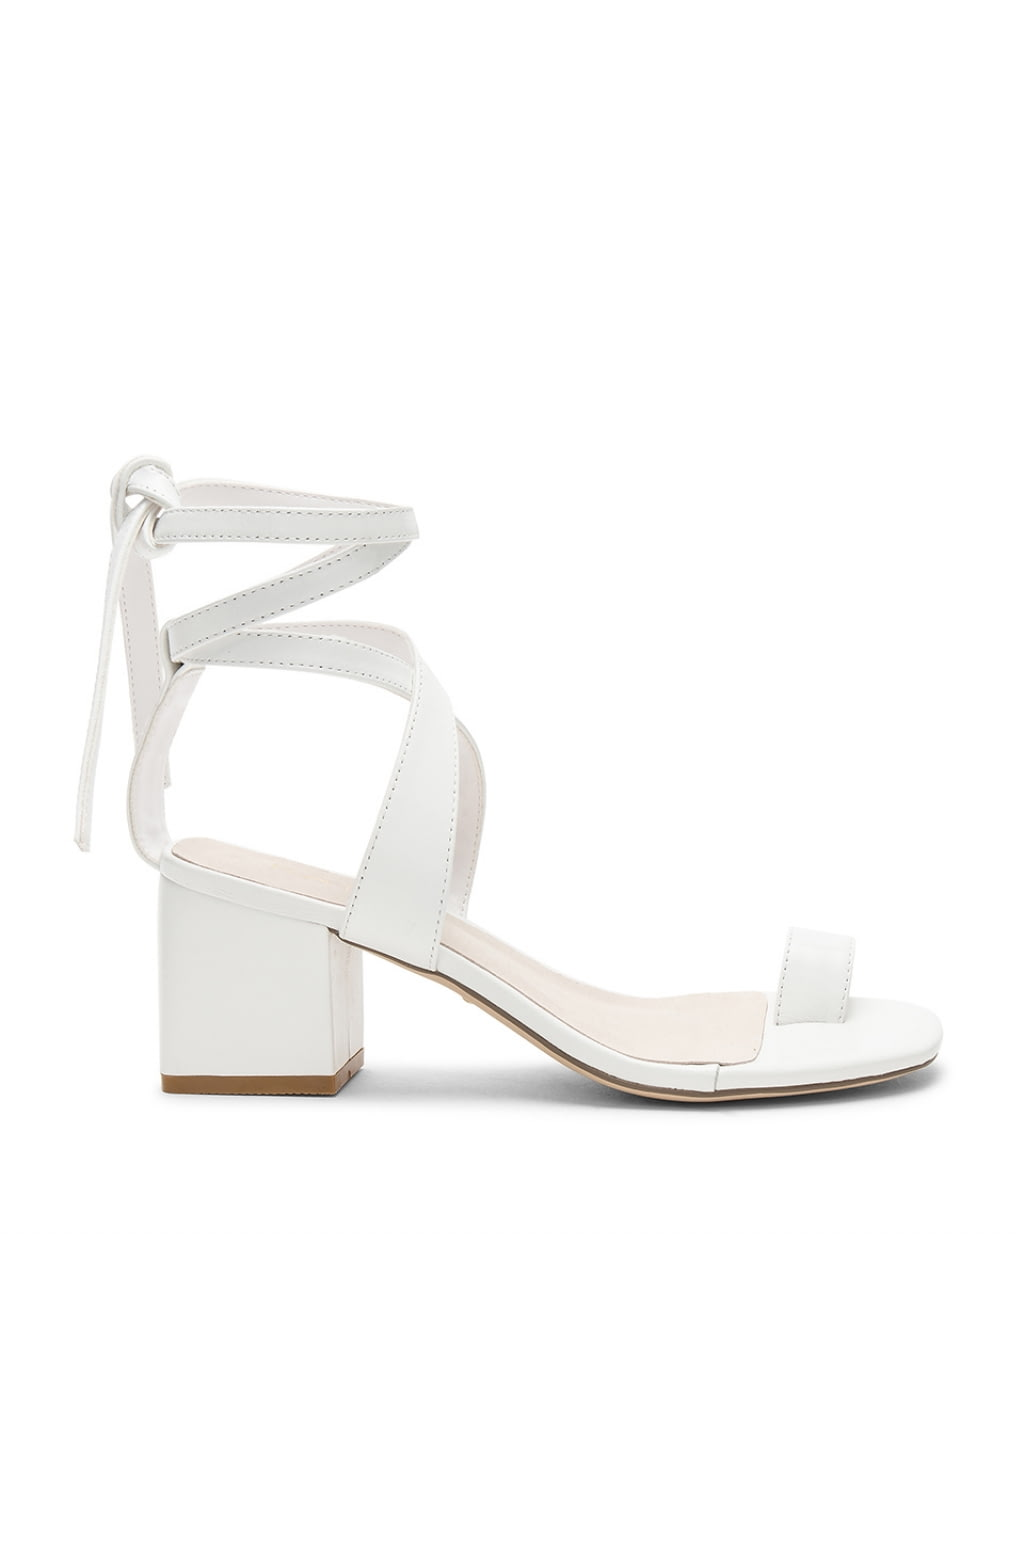 Clem Sandal in White. - size 6 (also in 10,5.5,6.5,7,7.5,8,8.5,9,9.5) Raye